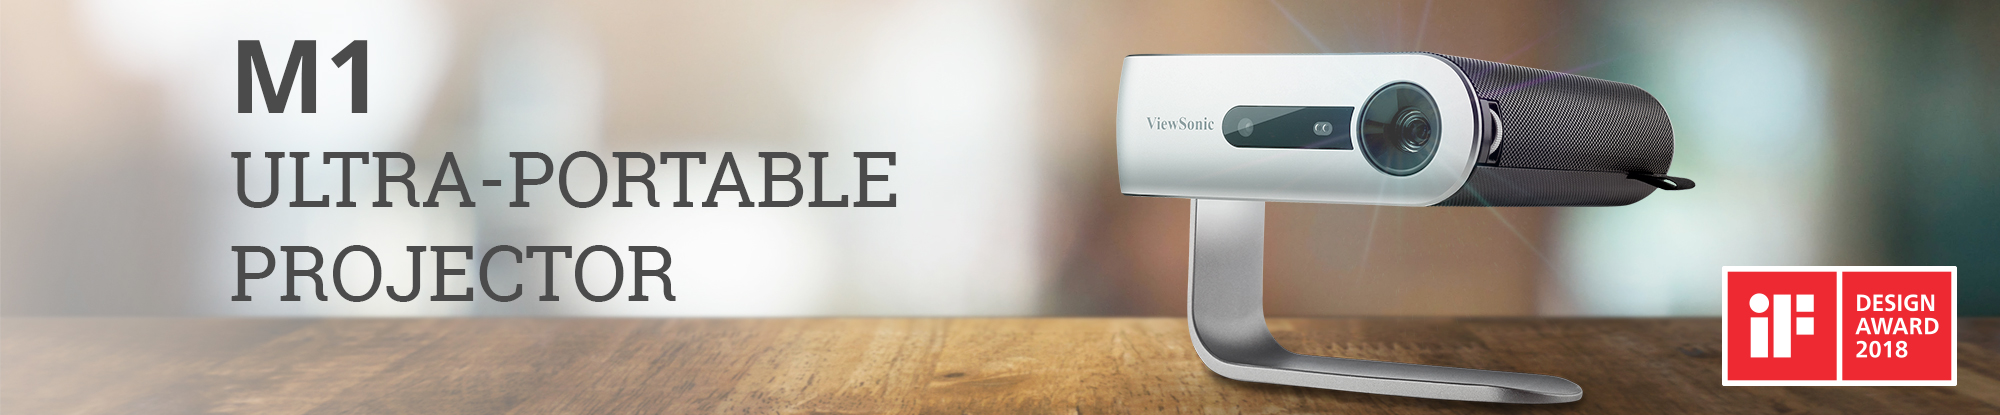 ViewSonic Ultra-Portable Projector Featuring Dual Harman Kardon® Speakers and 6 Hours* of Battery Life Now Shipping